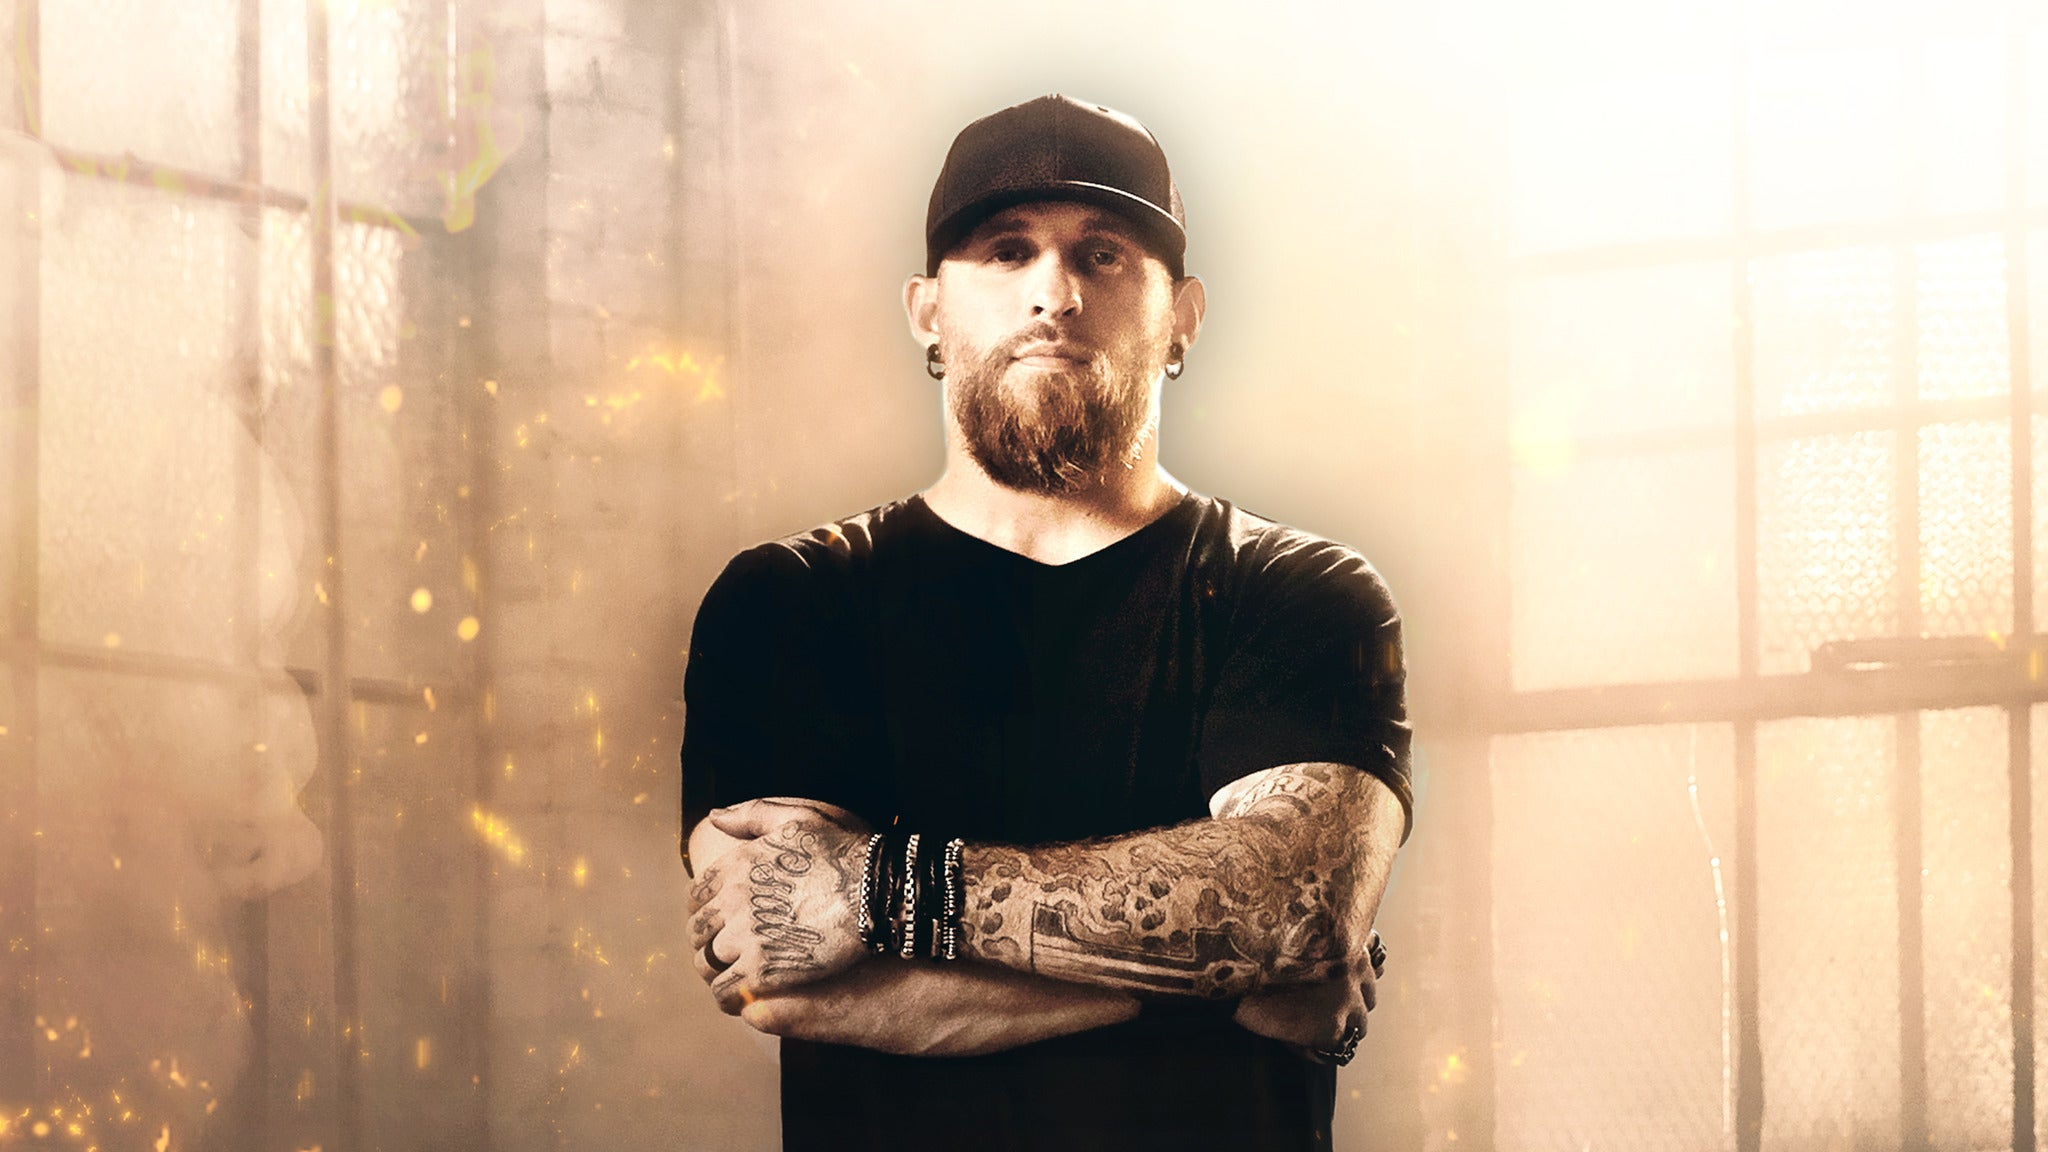 Brantley Gilbert - Fire't Up 2020 Tour at BOK Center